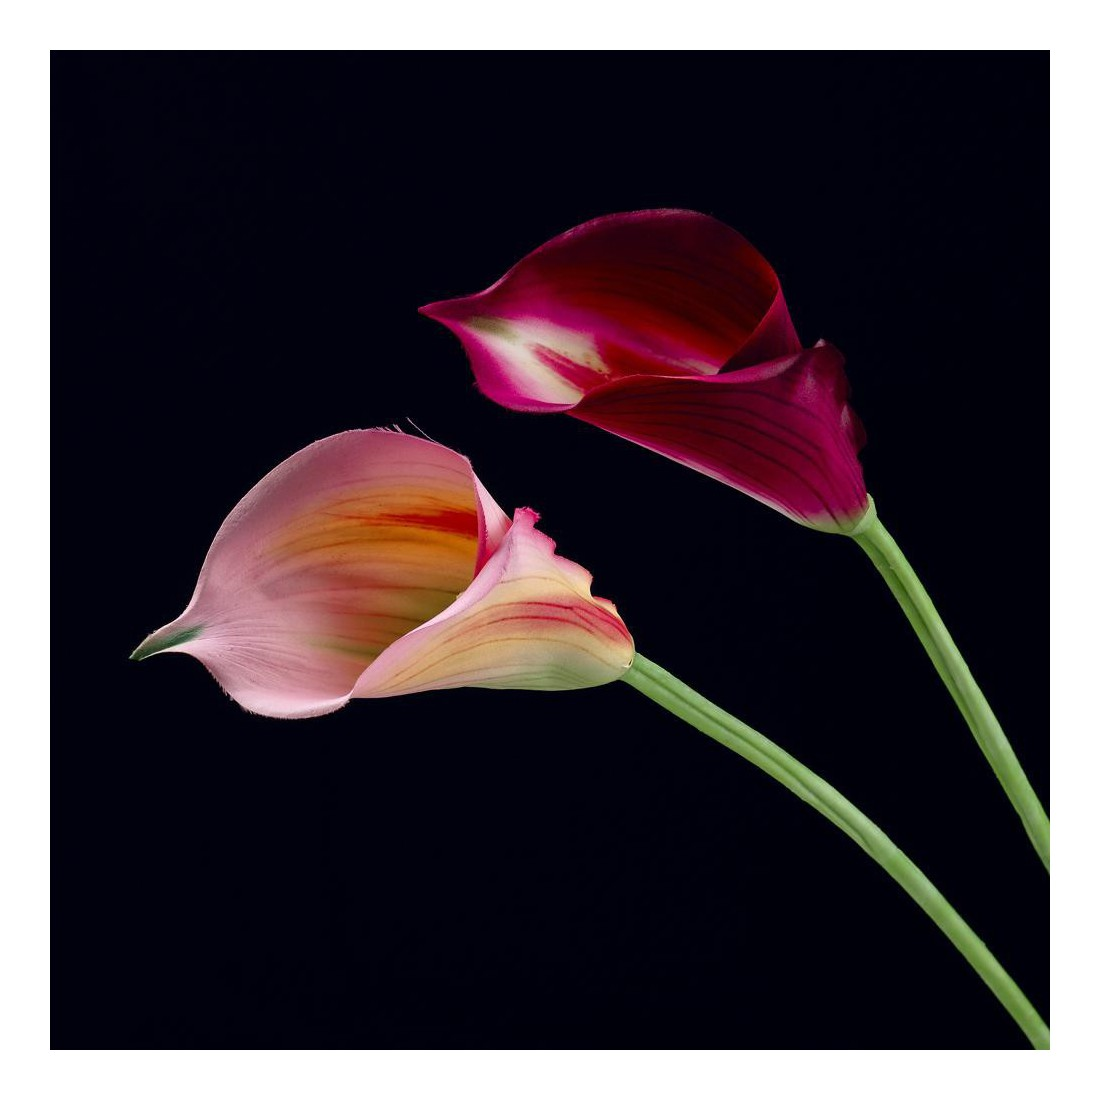 arum artificiel rose 72 cm fleurs intemporelles artificielles arum calla artificielles reflets. Black Bedroom Furniture Sets. Home Design Ideas